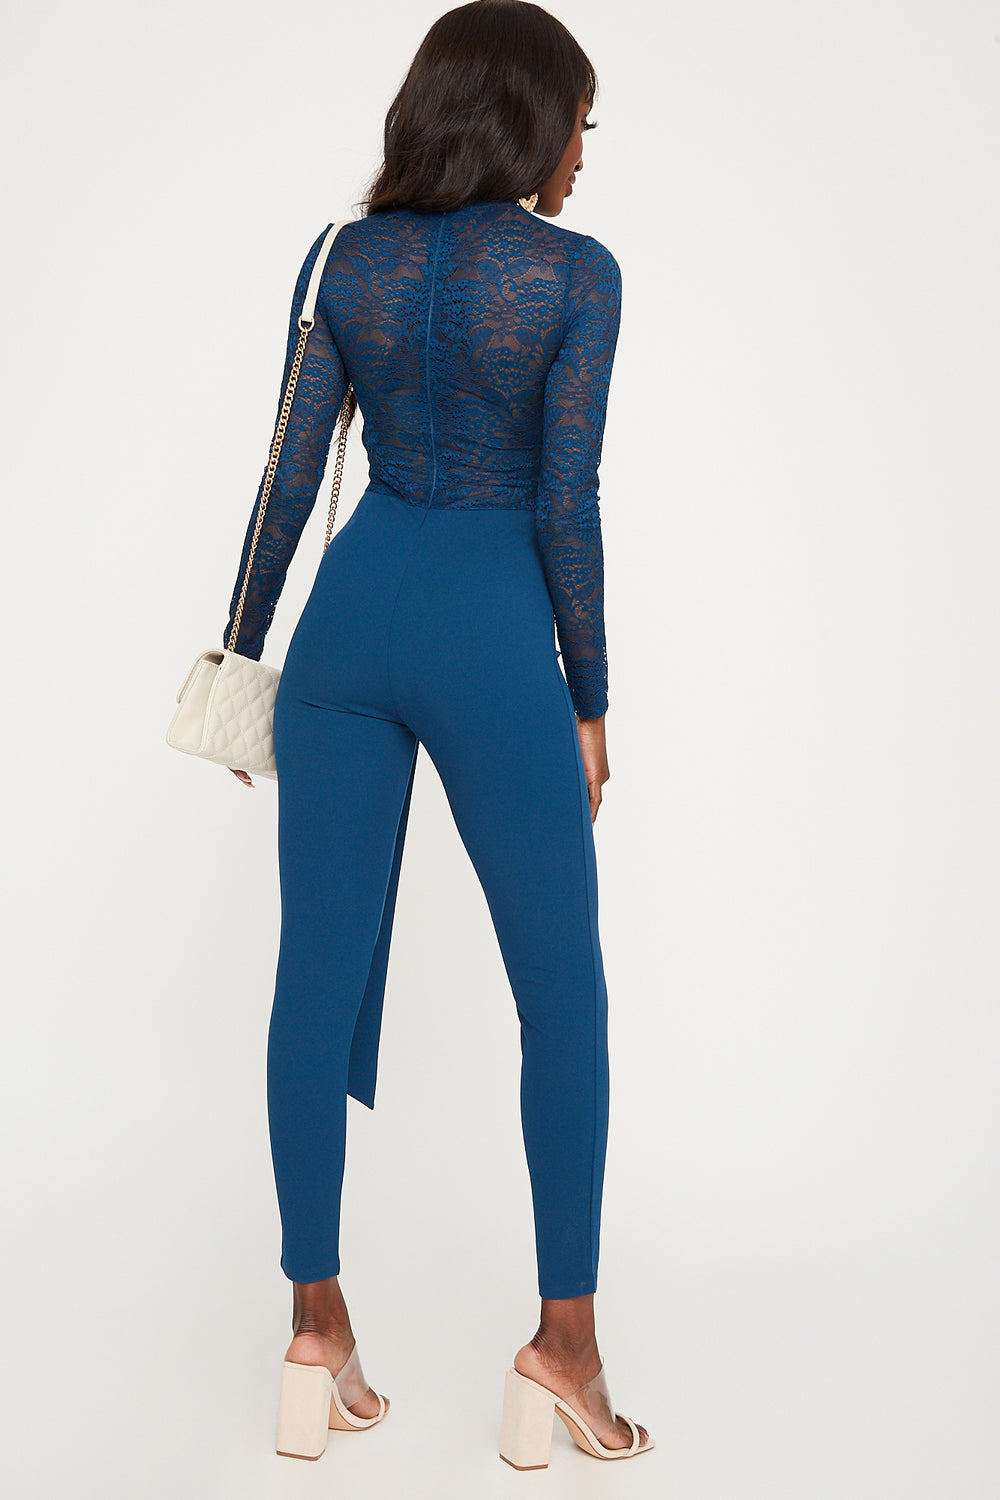 Lace Mock Neck Belted Long Sleeve Jumpsuit Navy